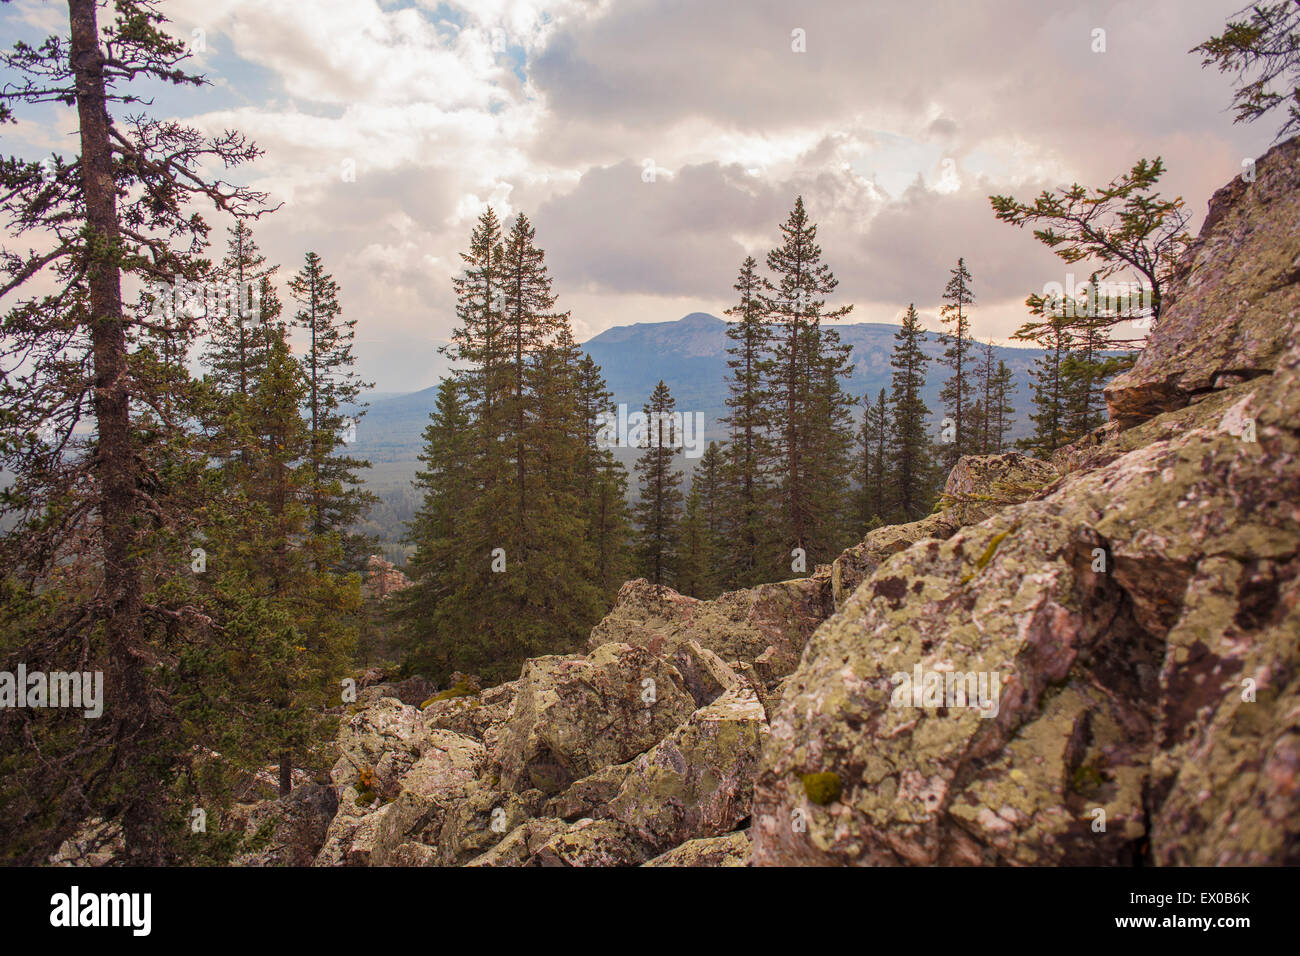 View of rocks, forest and distant mountains, Sarsy Village, Sverdlovsk Oblast, Russia - Stock Image